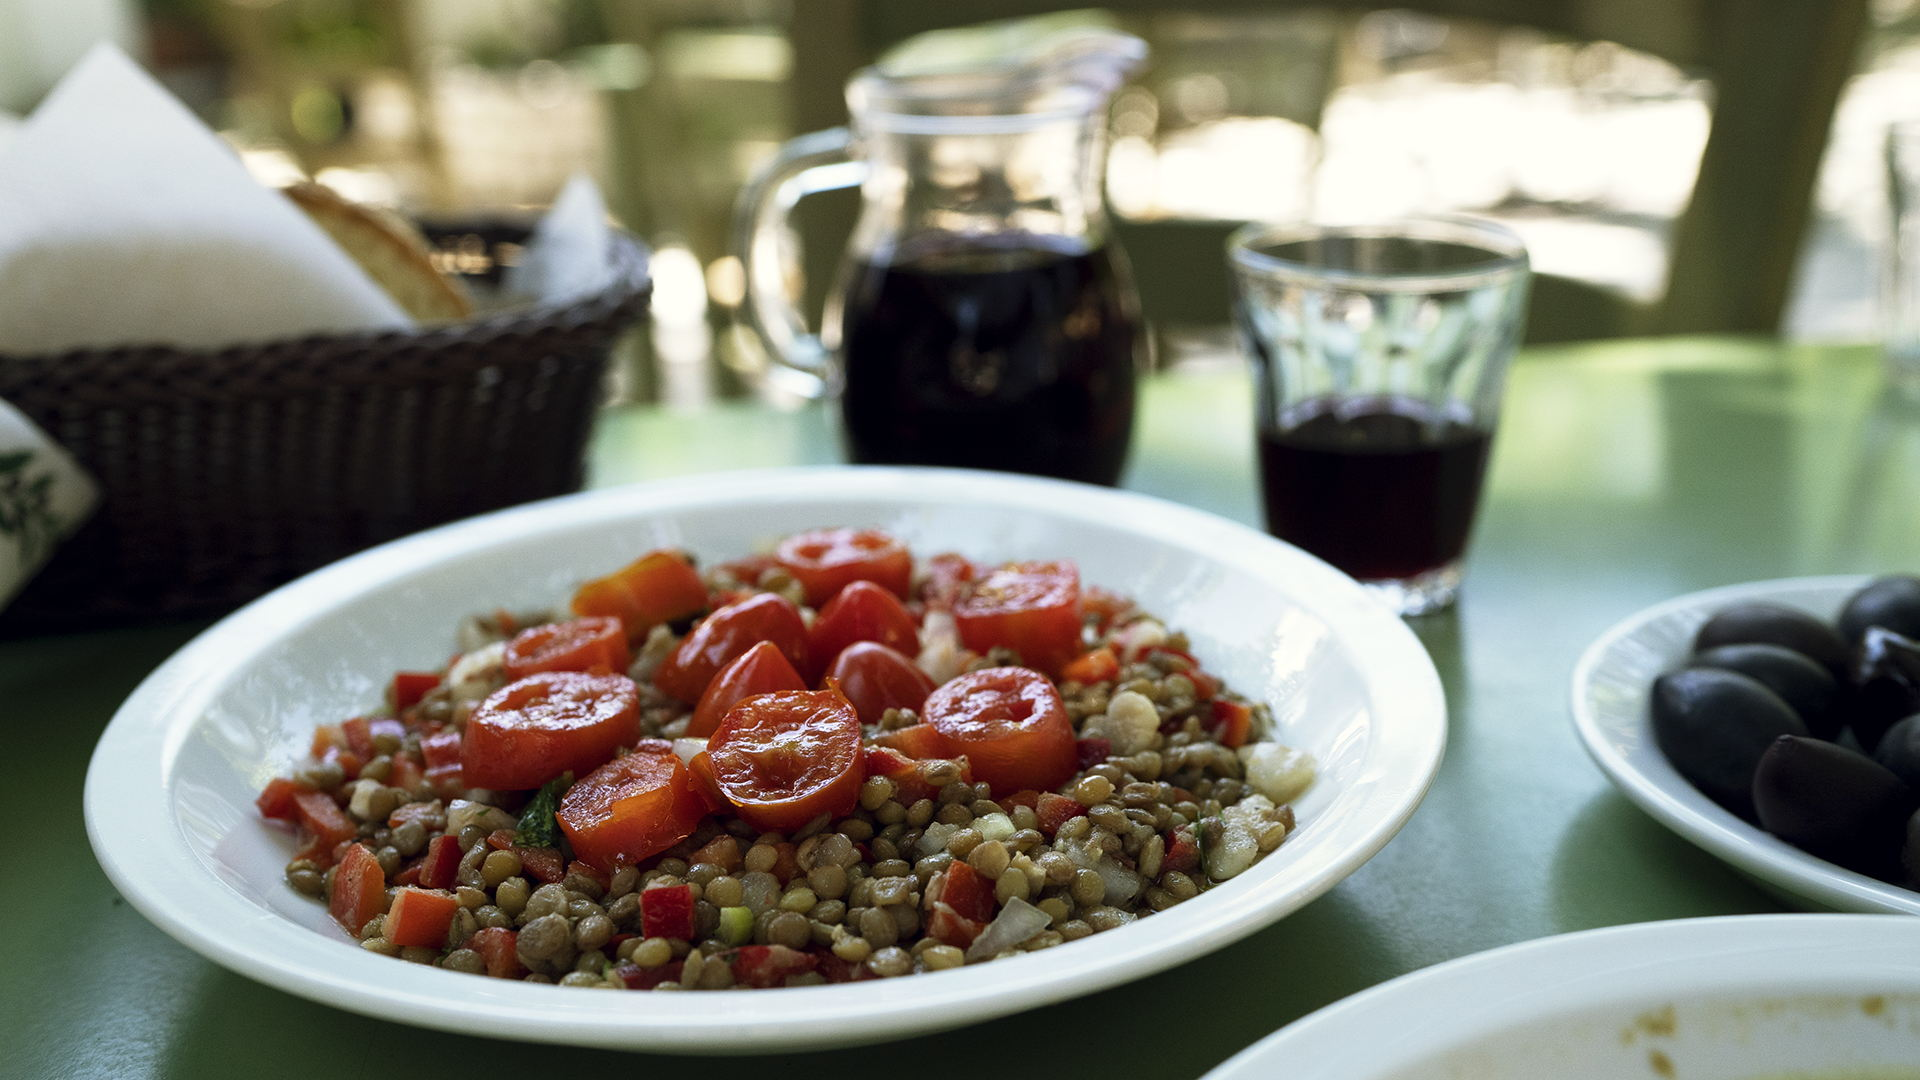 Lefkadas' lentils are famed for their taste